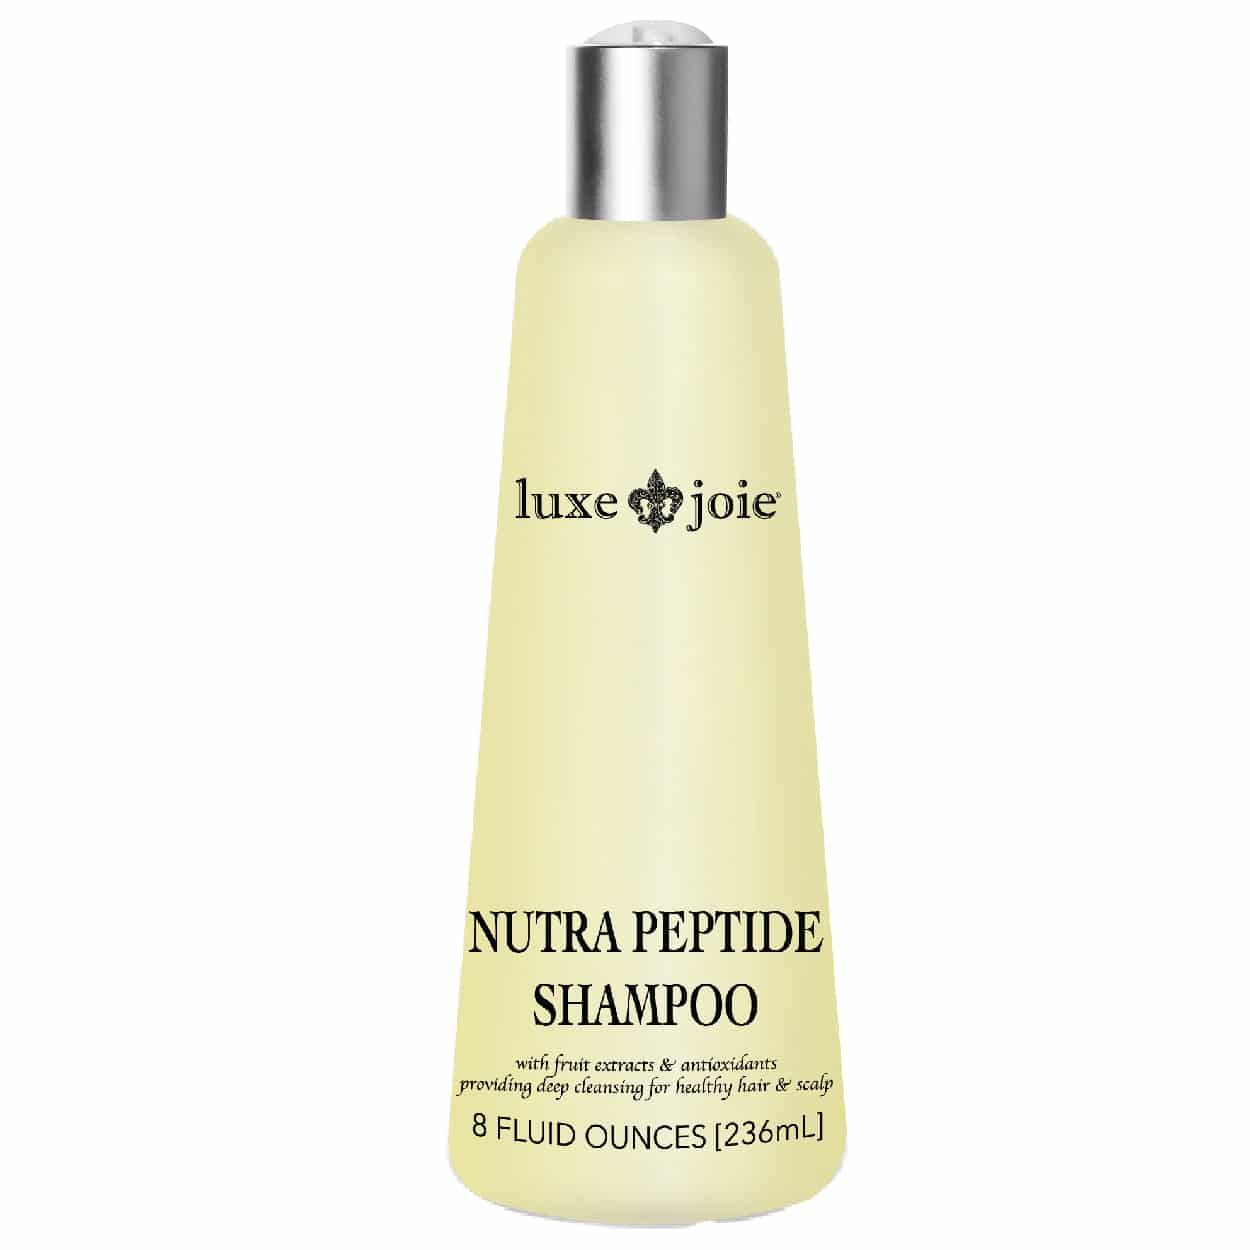 nutra peptide shampoo on white background